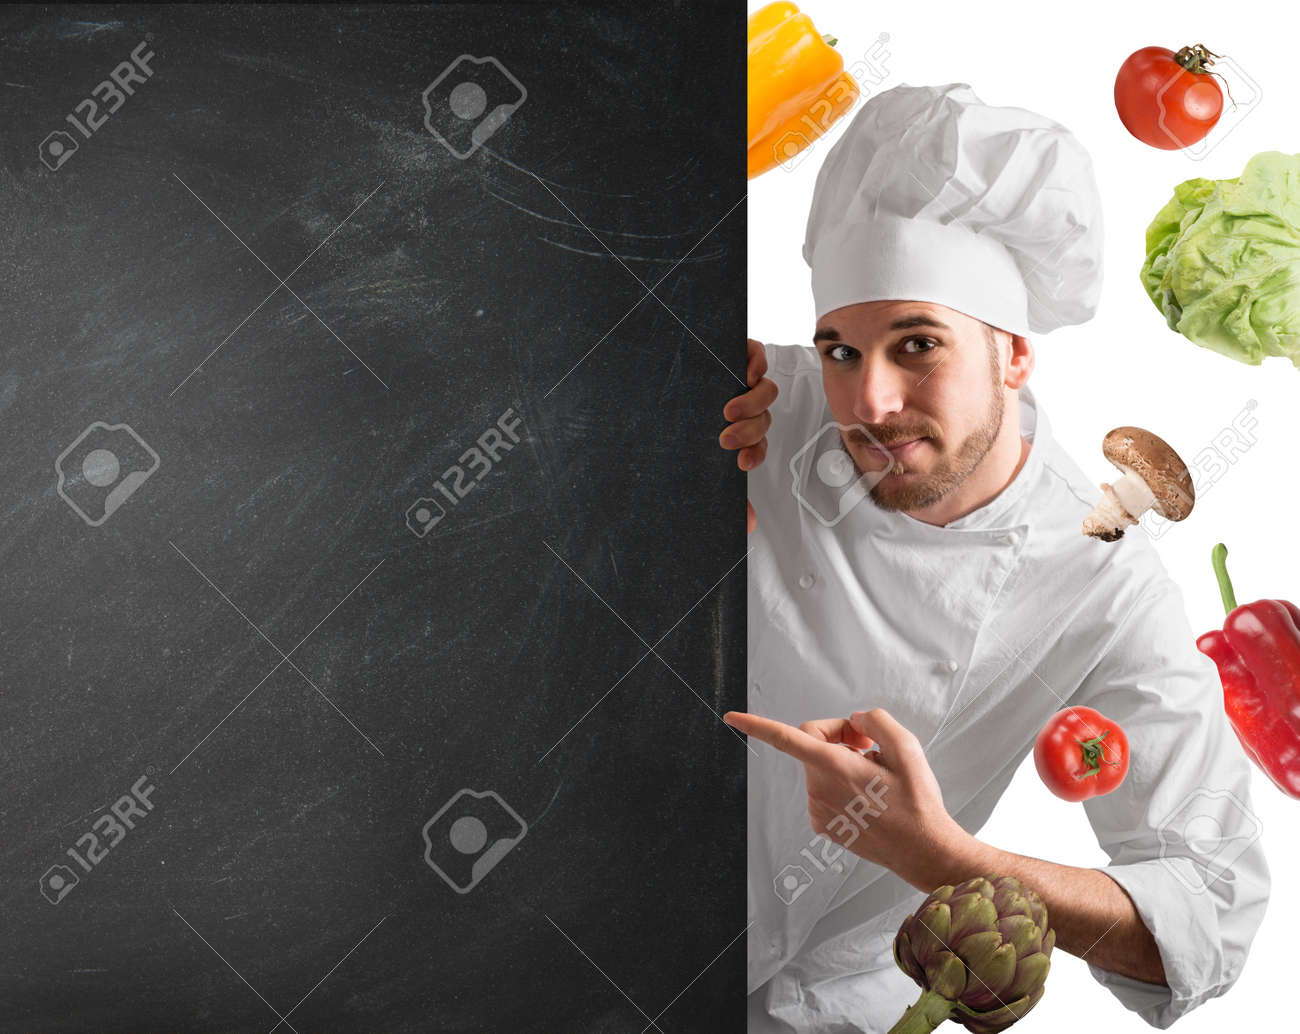 Smiling chef with blackboard and vegetables background - 63888852